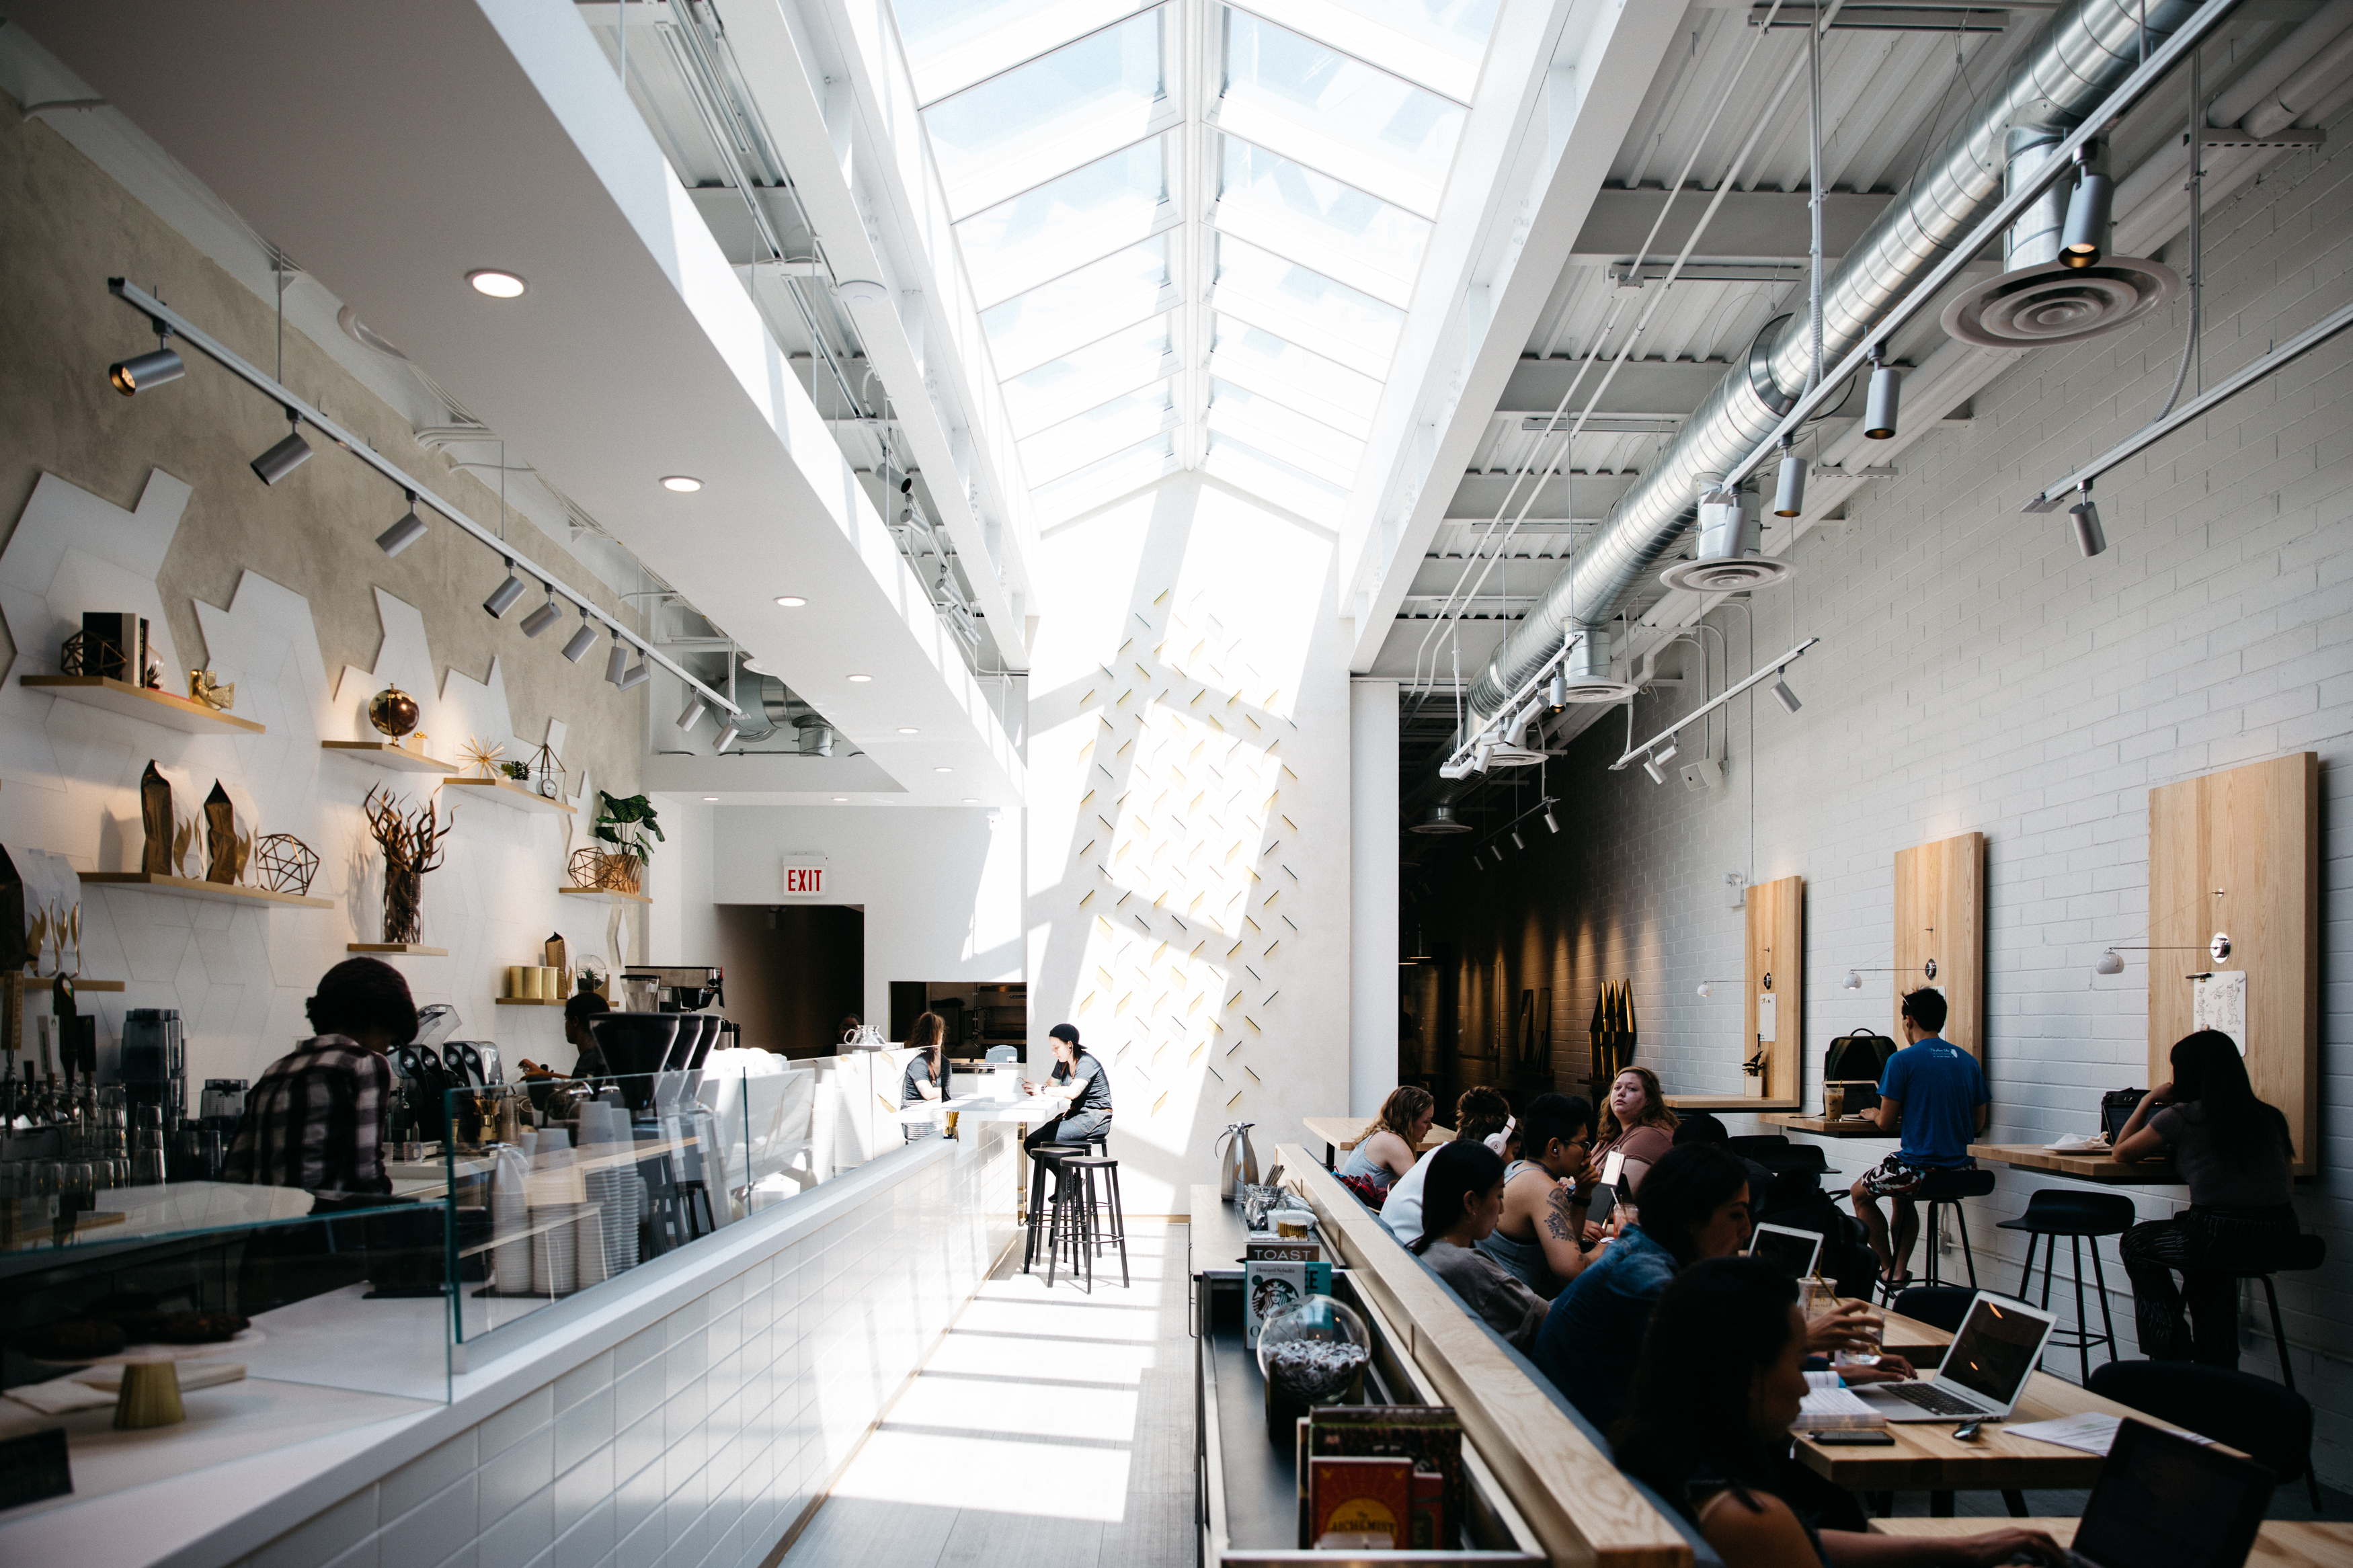 a8c7efced337dd The Best Coffee Shops For Getting Work Done - Chicago - The Infatuation